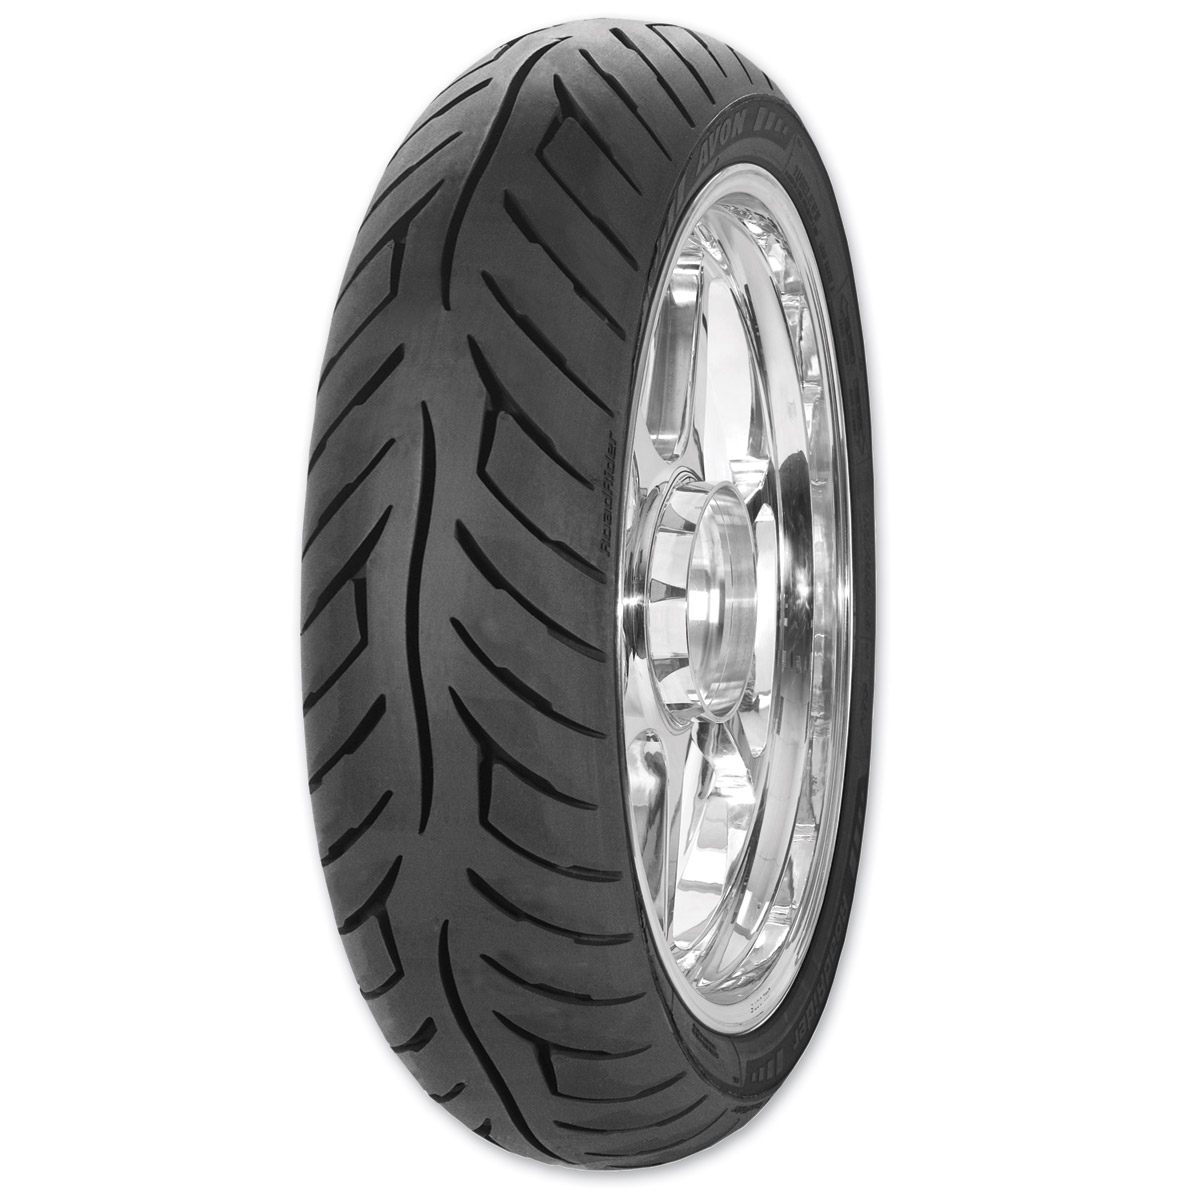 Avon AM26 Roadrider 130/80-18 Rear Tire